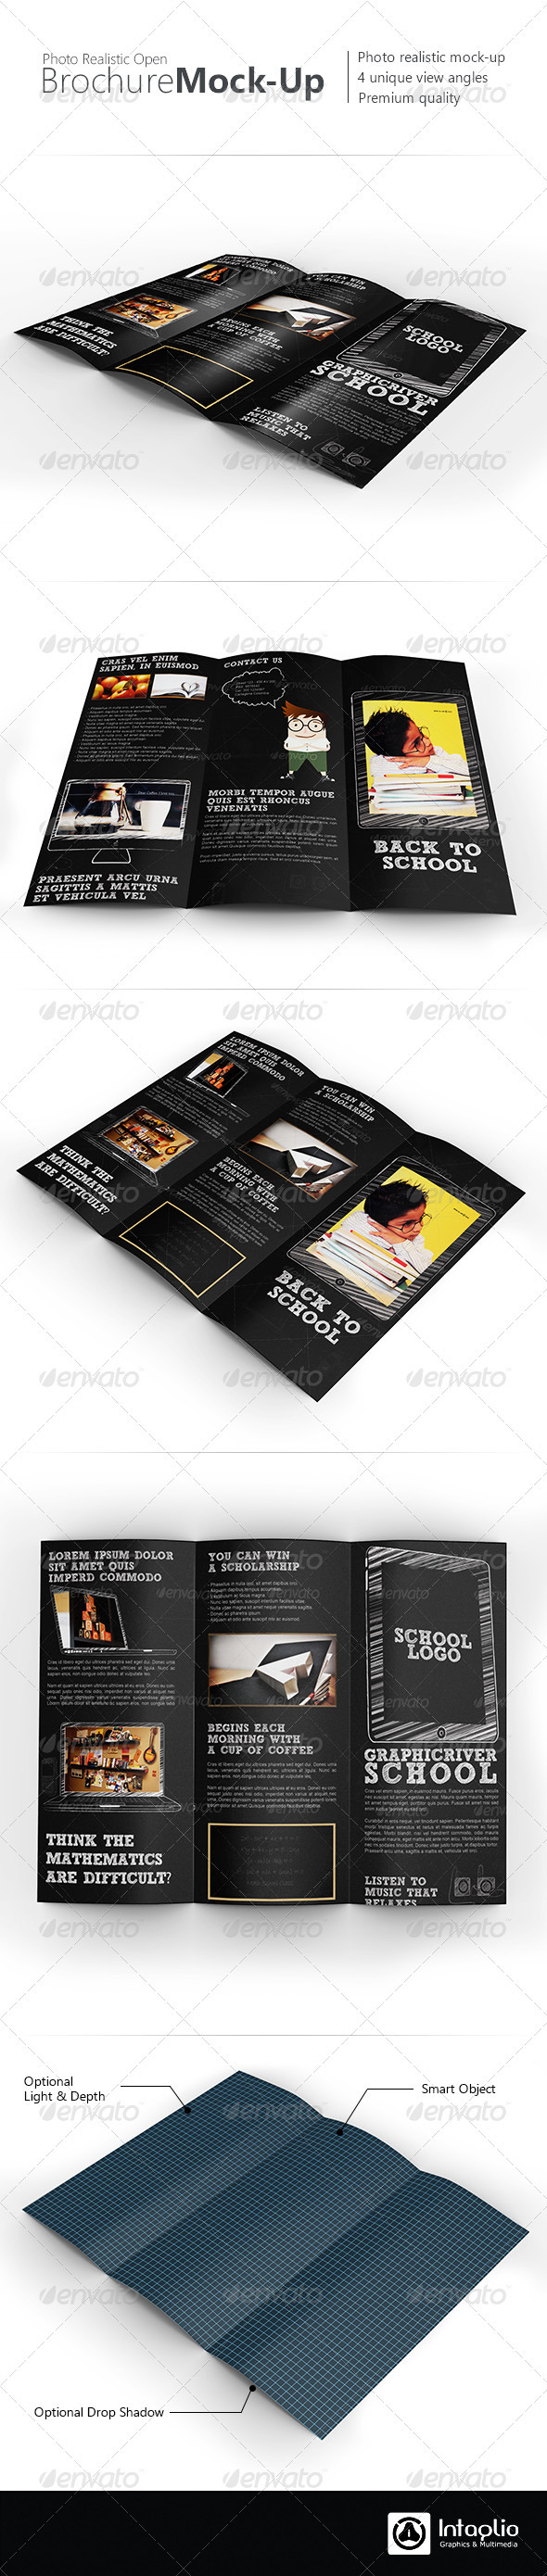 Photorealistic Tri-Fold Brochure Mock-Up - Brochures Print